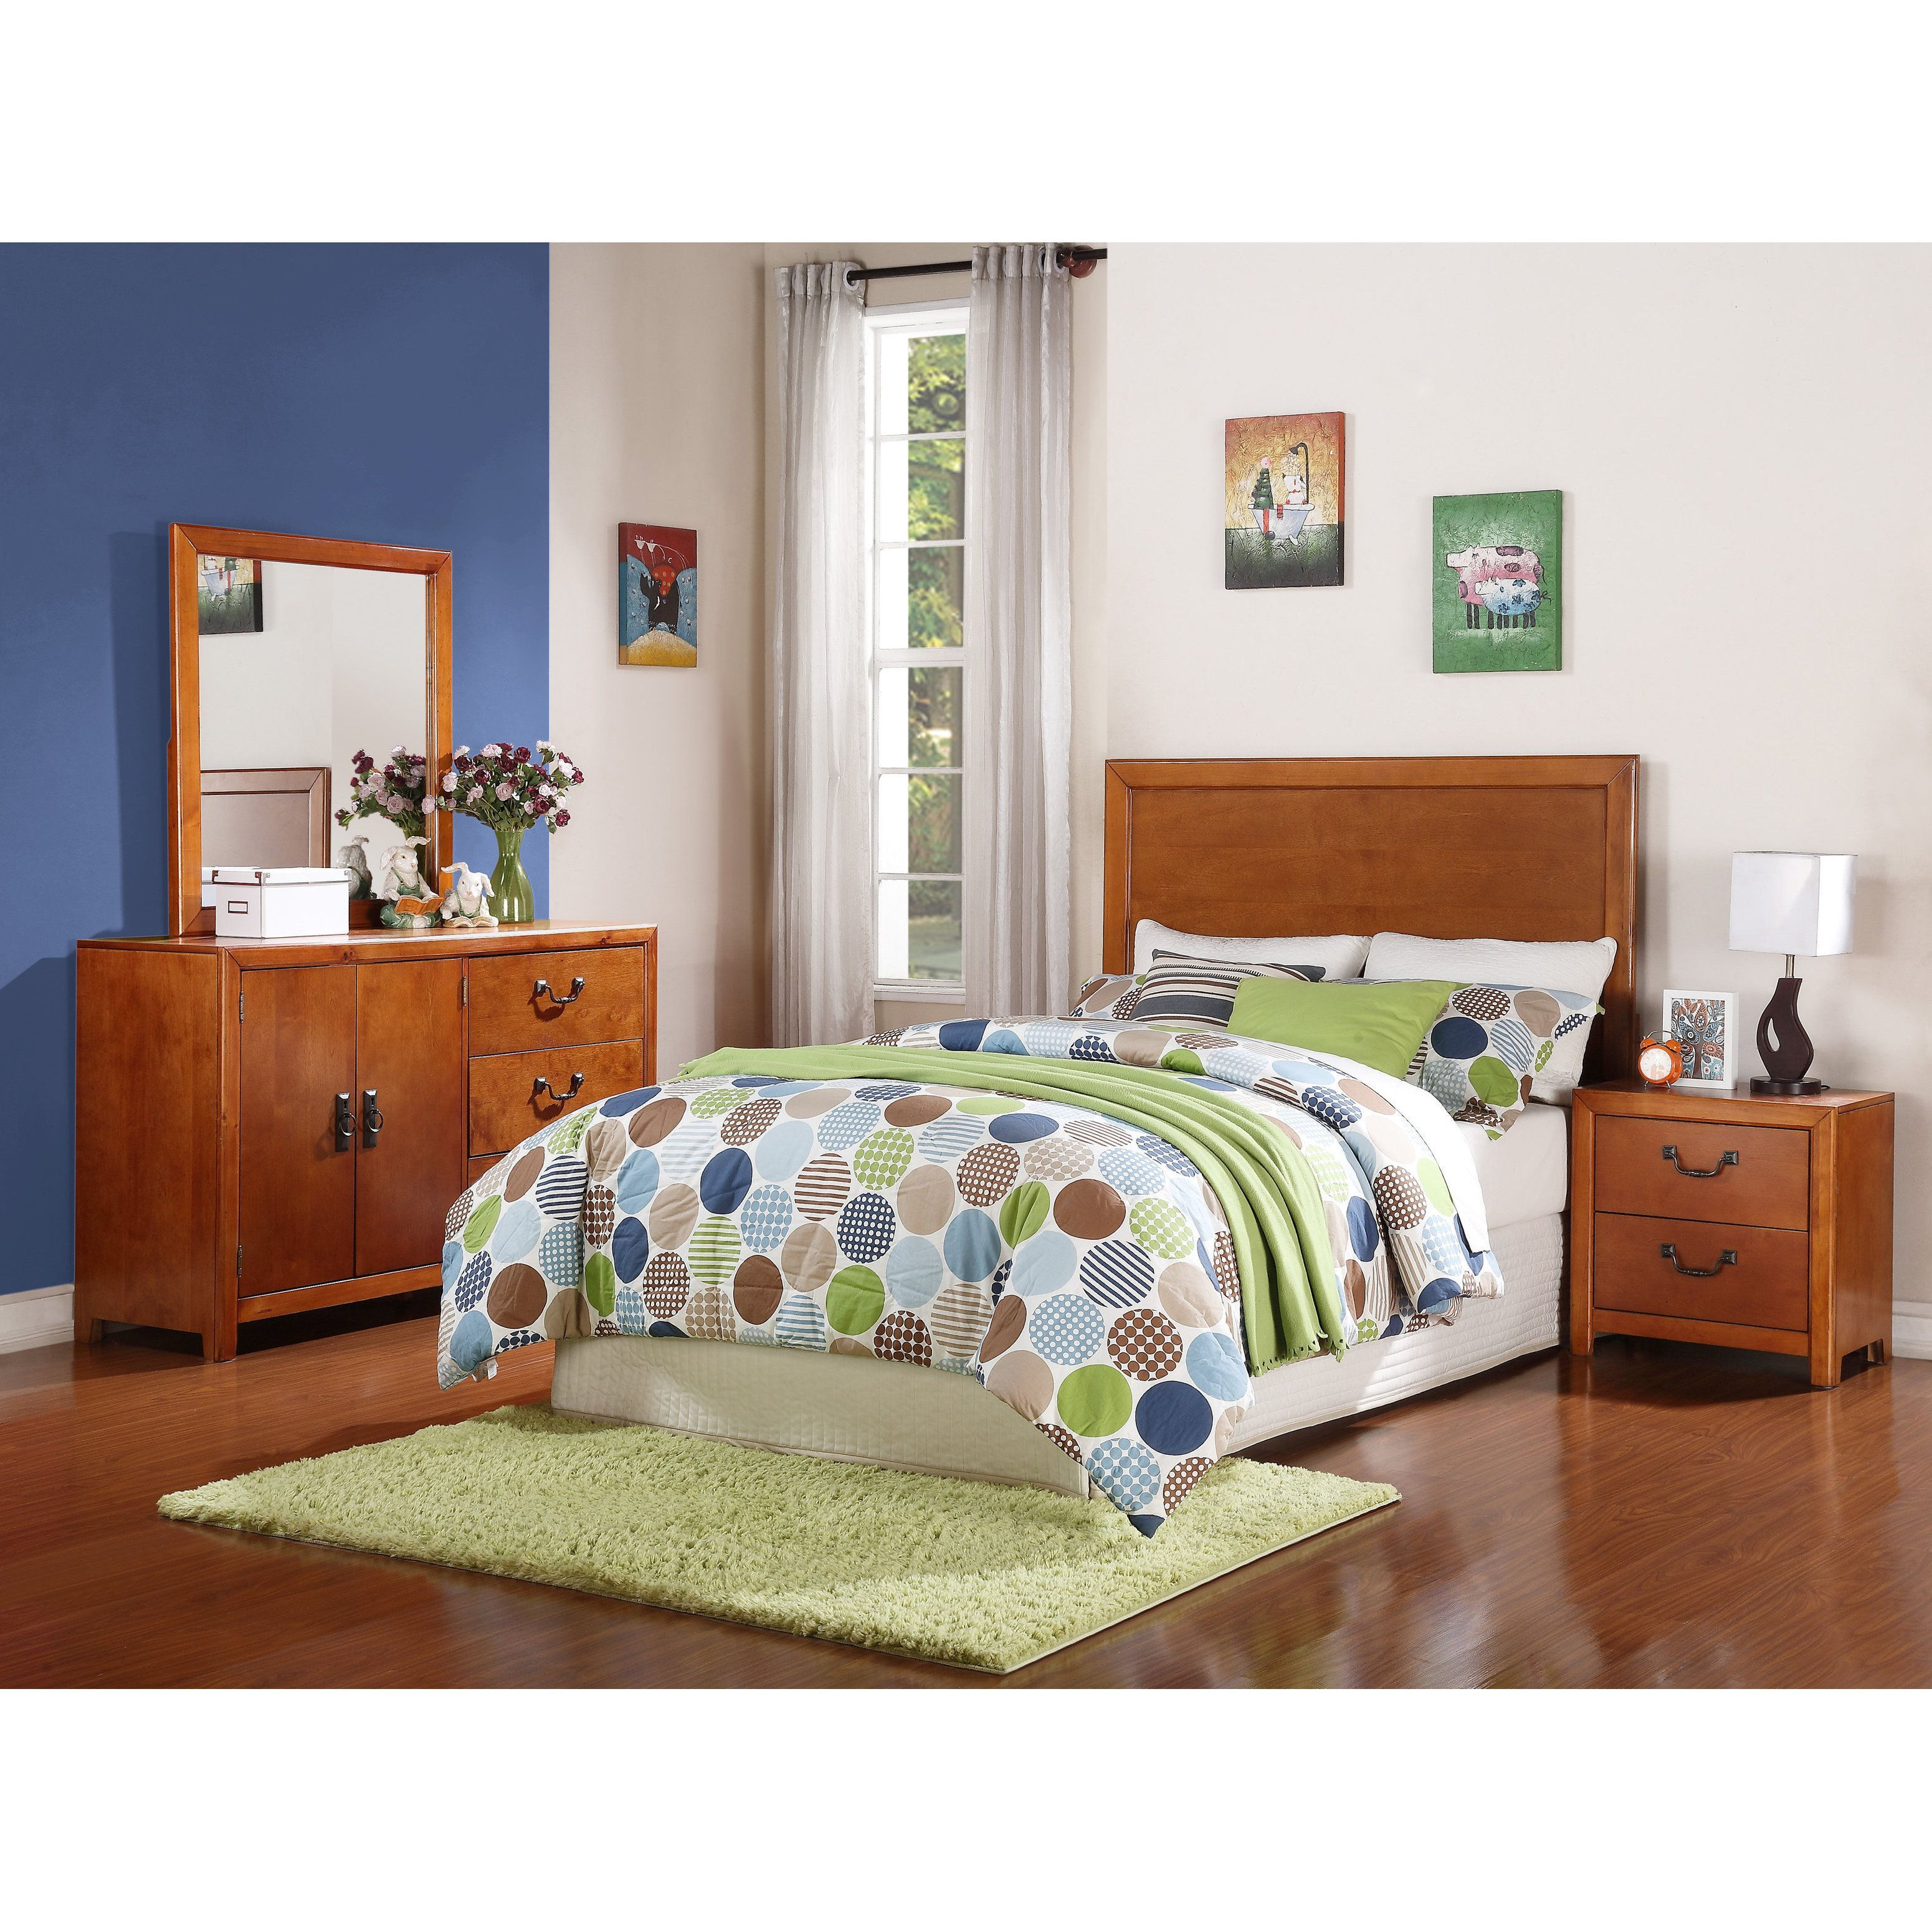 Powell Giselle Bed in a Box Box bed, Kids bedroom